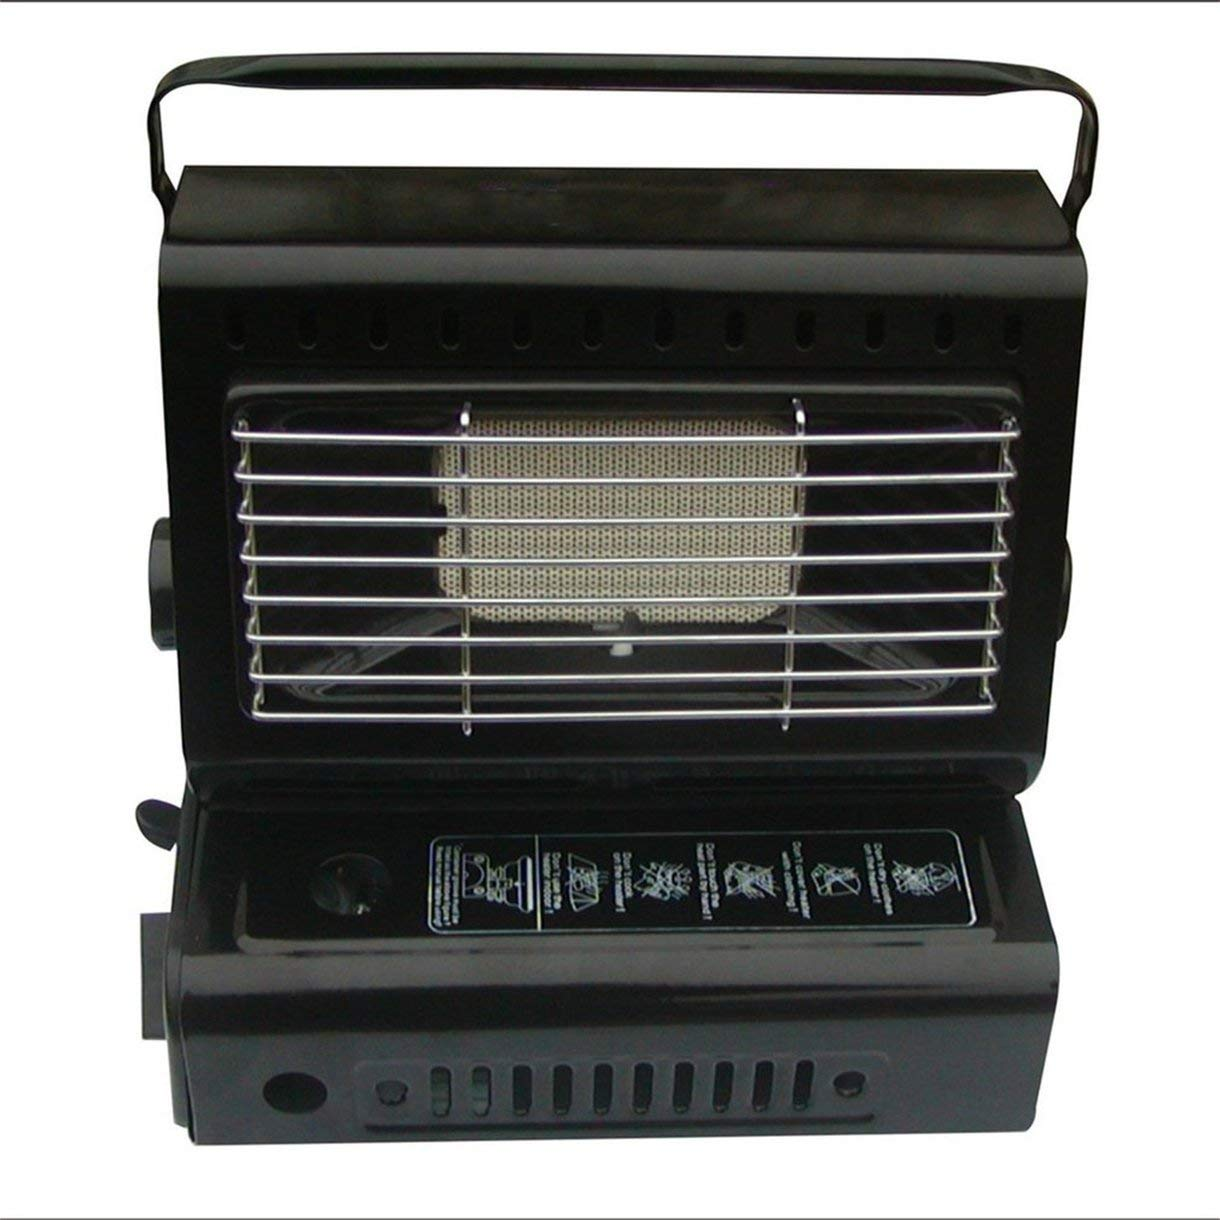 megai Outdoor Heater Burner Gas Heater Travelling Camping Hiking Picnic Equipment Dual-purpose Use Portable Stove Heater Iron